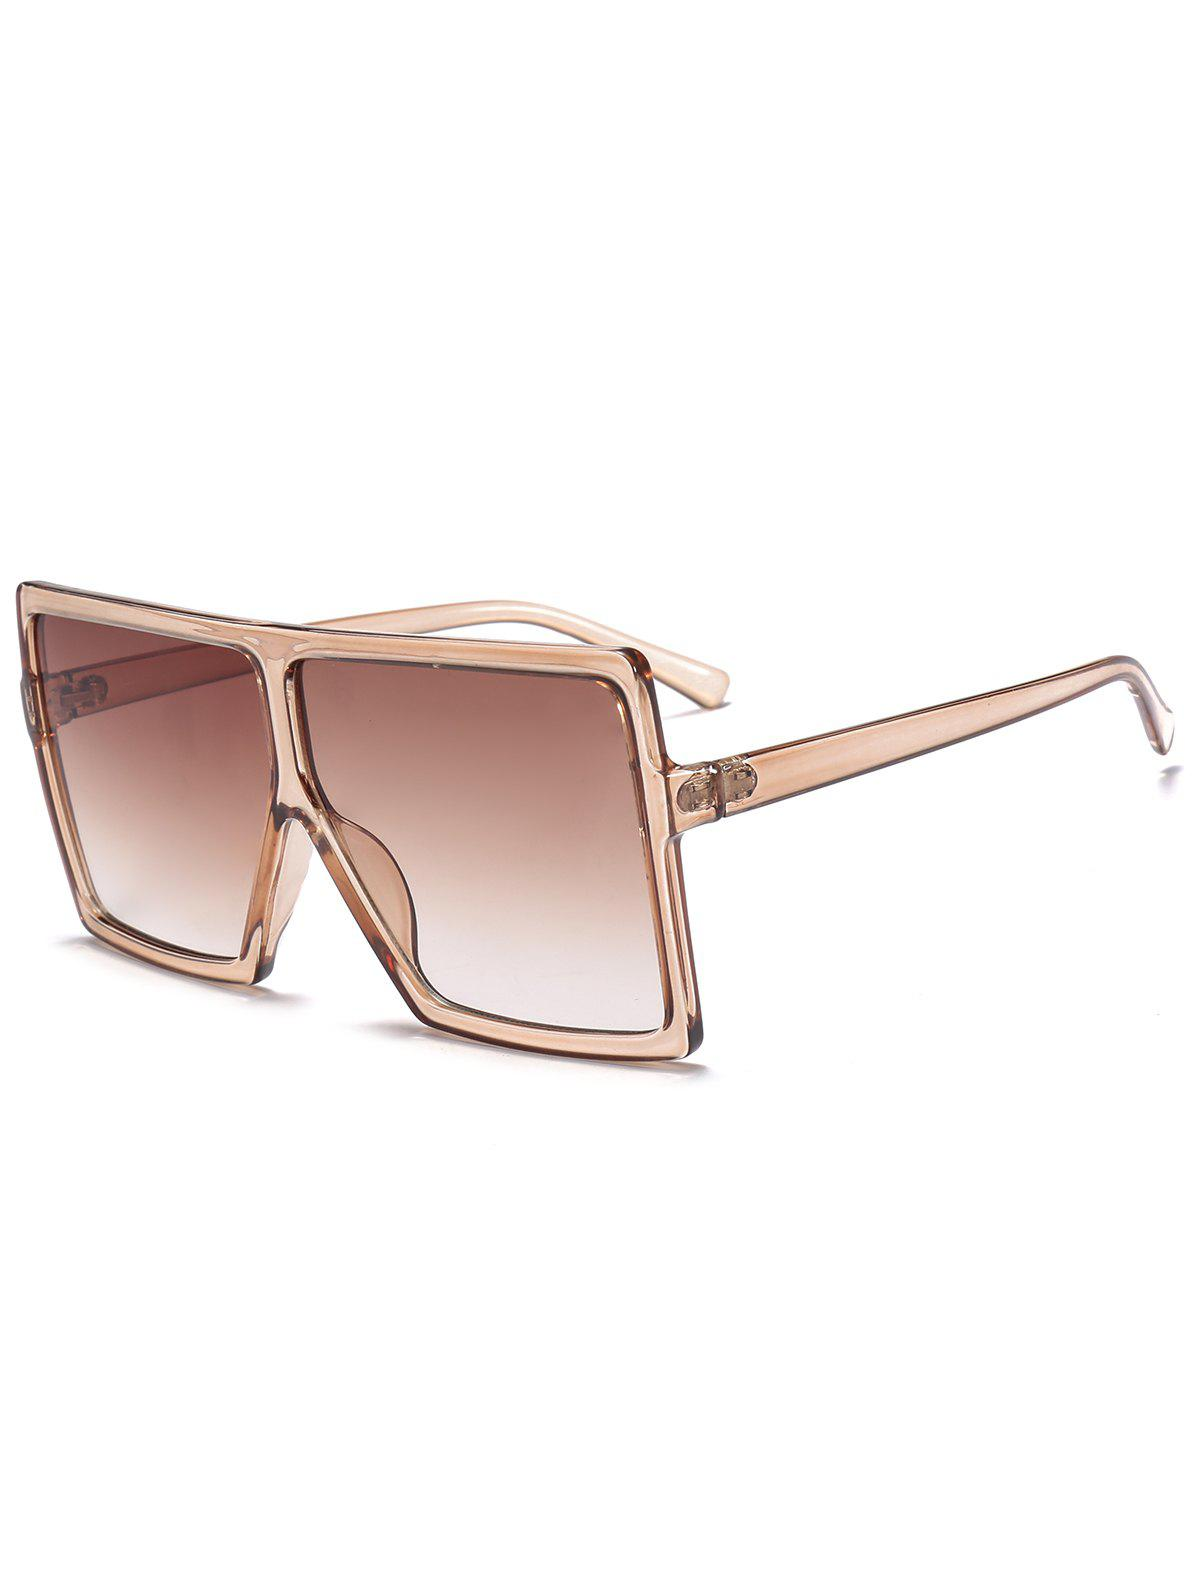 Best Oversized Square Full Frame Sunglasses